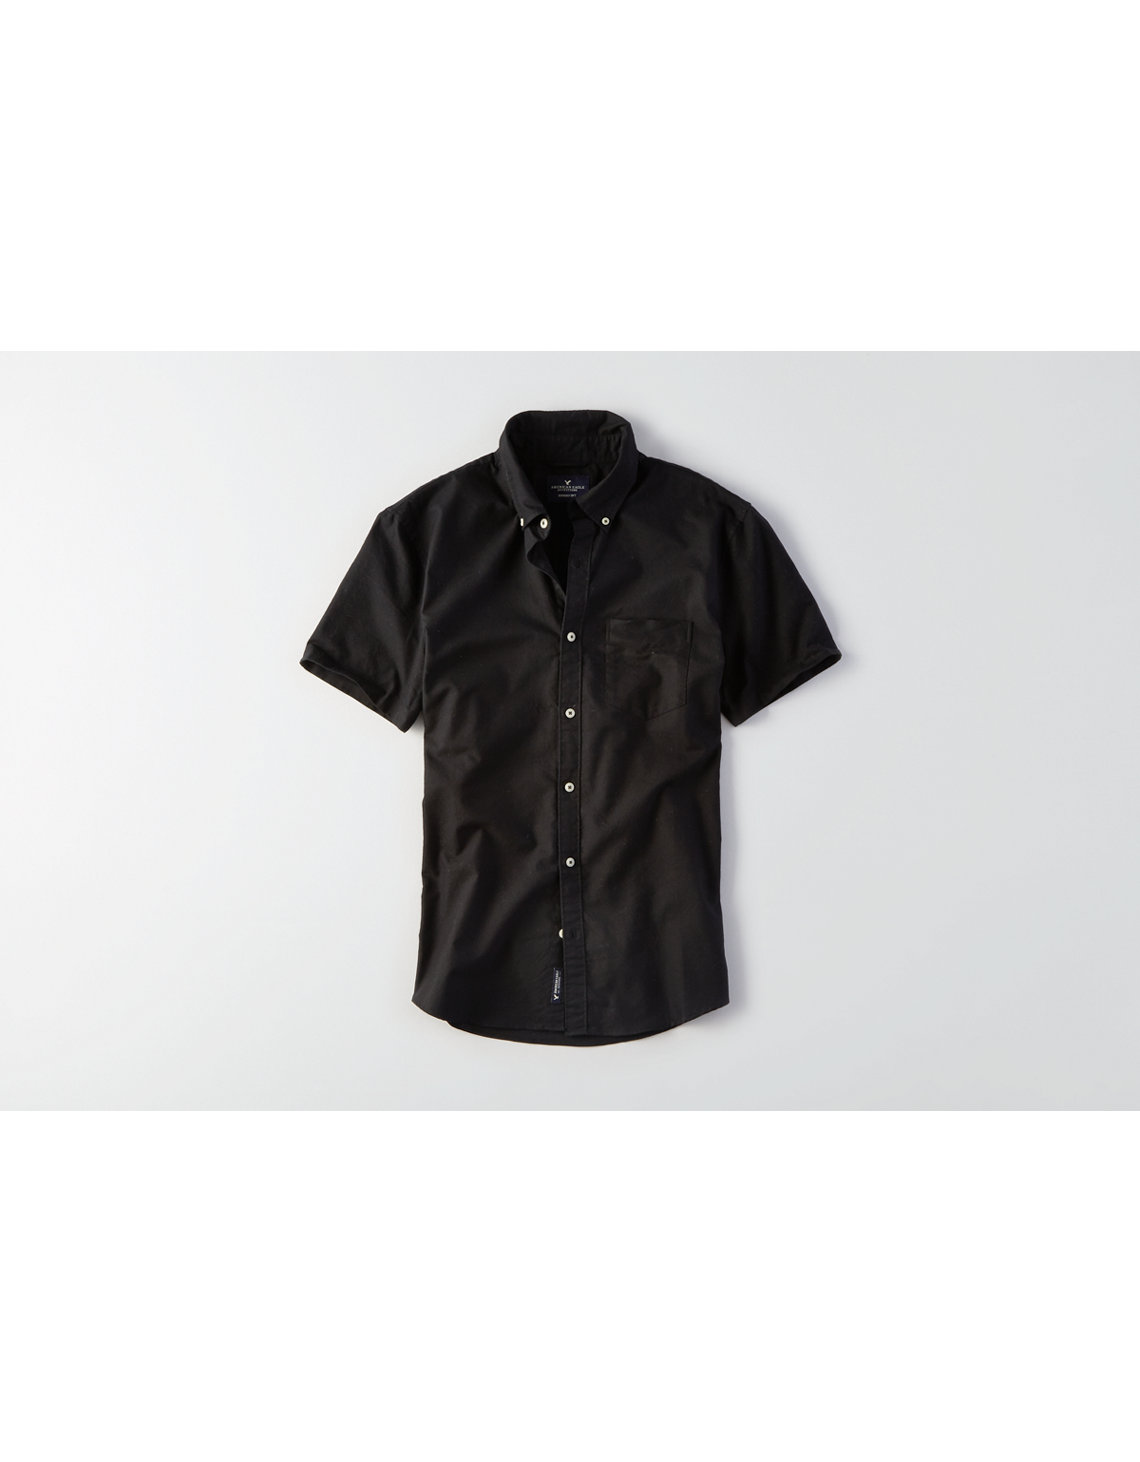 AEO Solid Short Sleeve Oxford Shirt, Black | American Eagle Outfitters